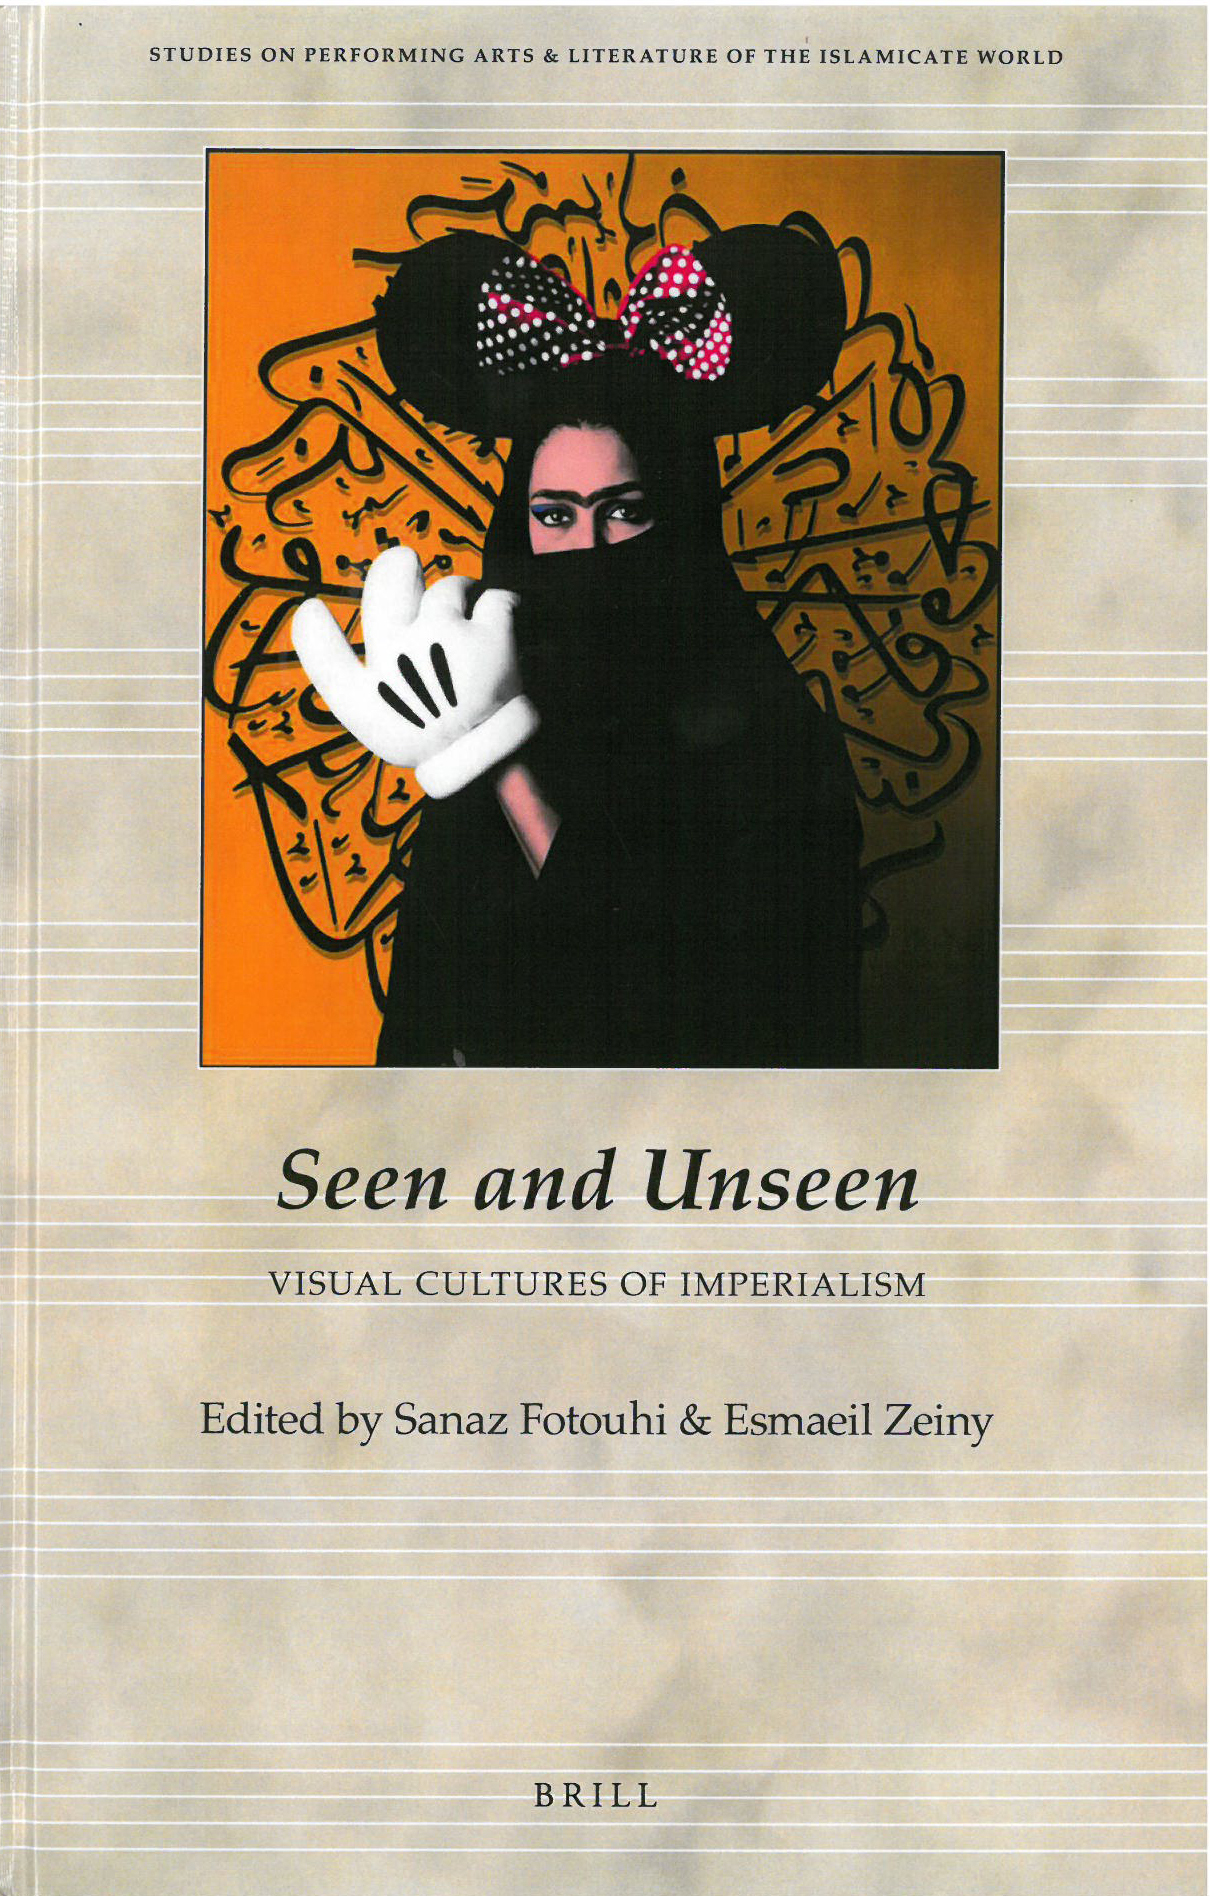 SEEN AND UNSEEN: VISUAL CULTURES OF IMPERIALISM